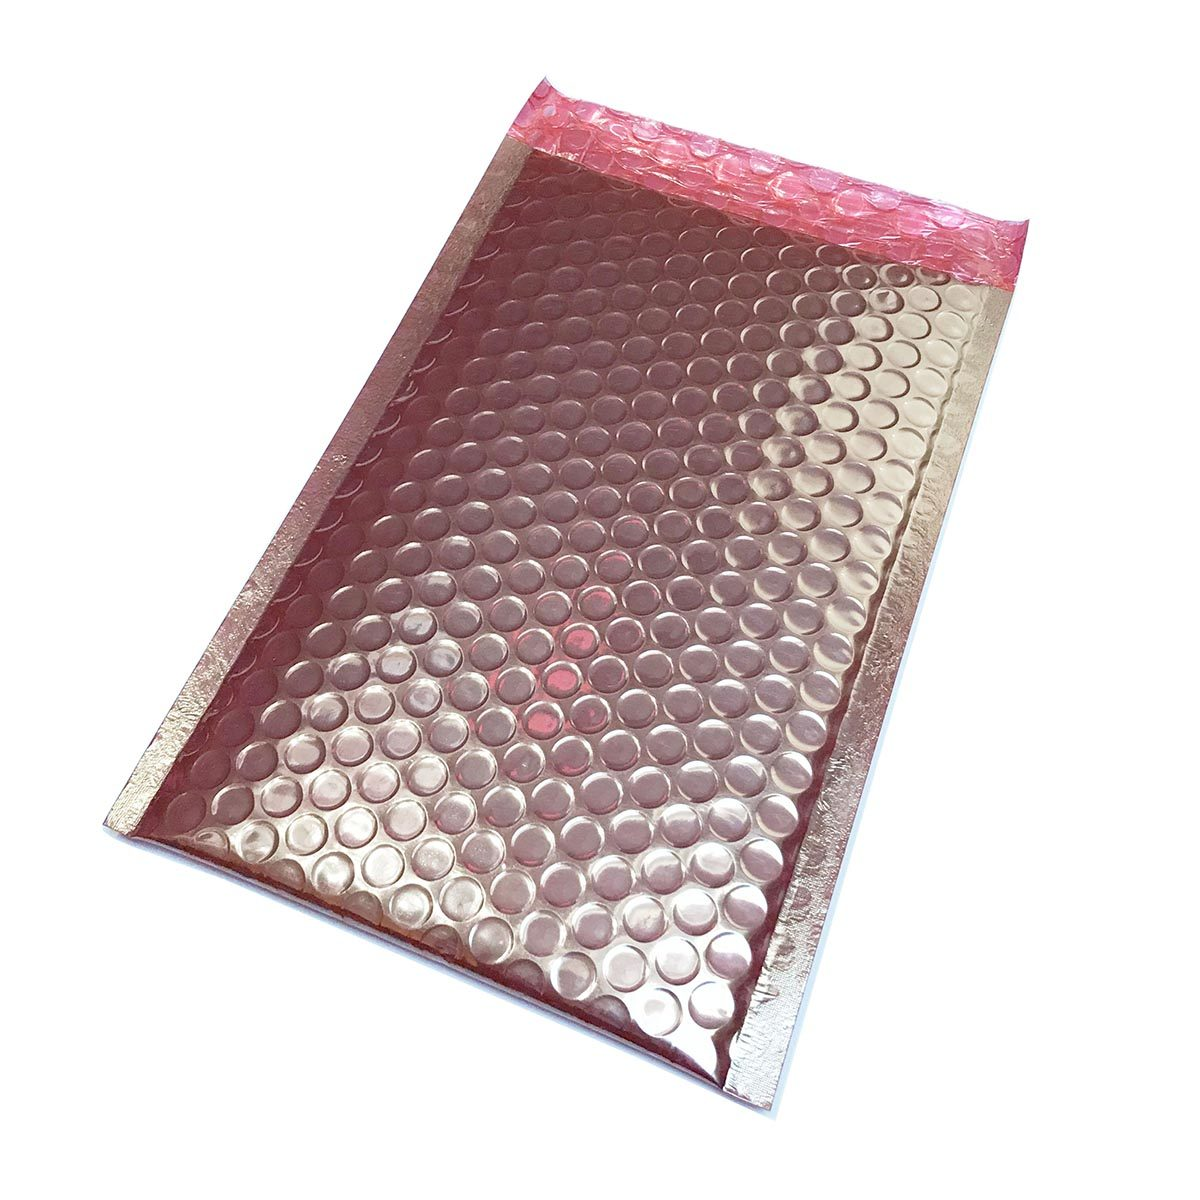 Static shielding cushion pouches